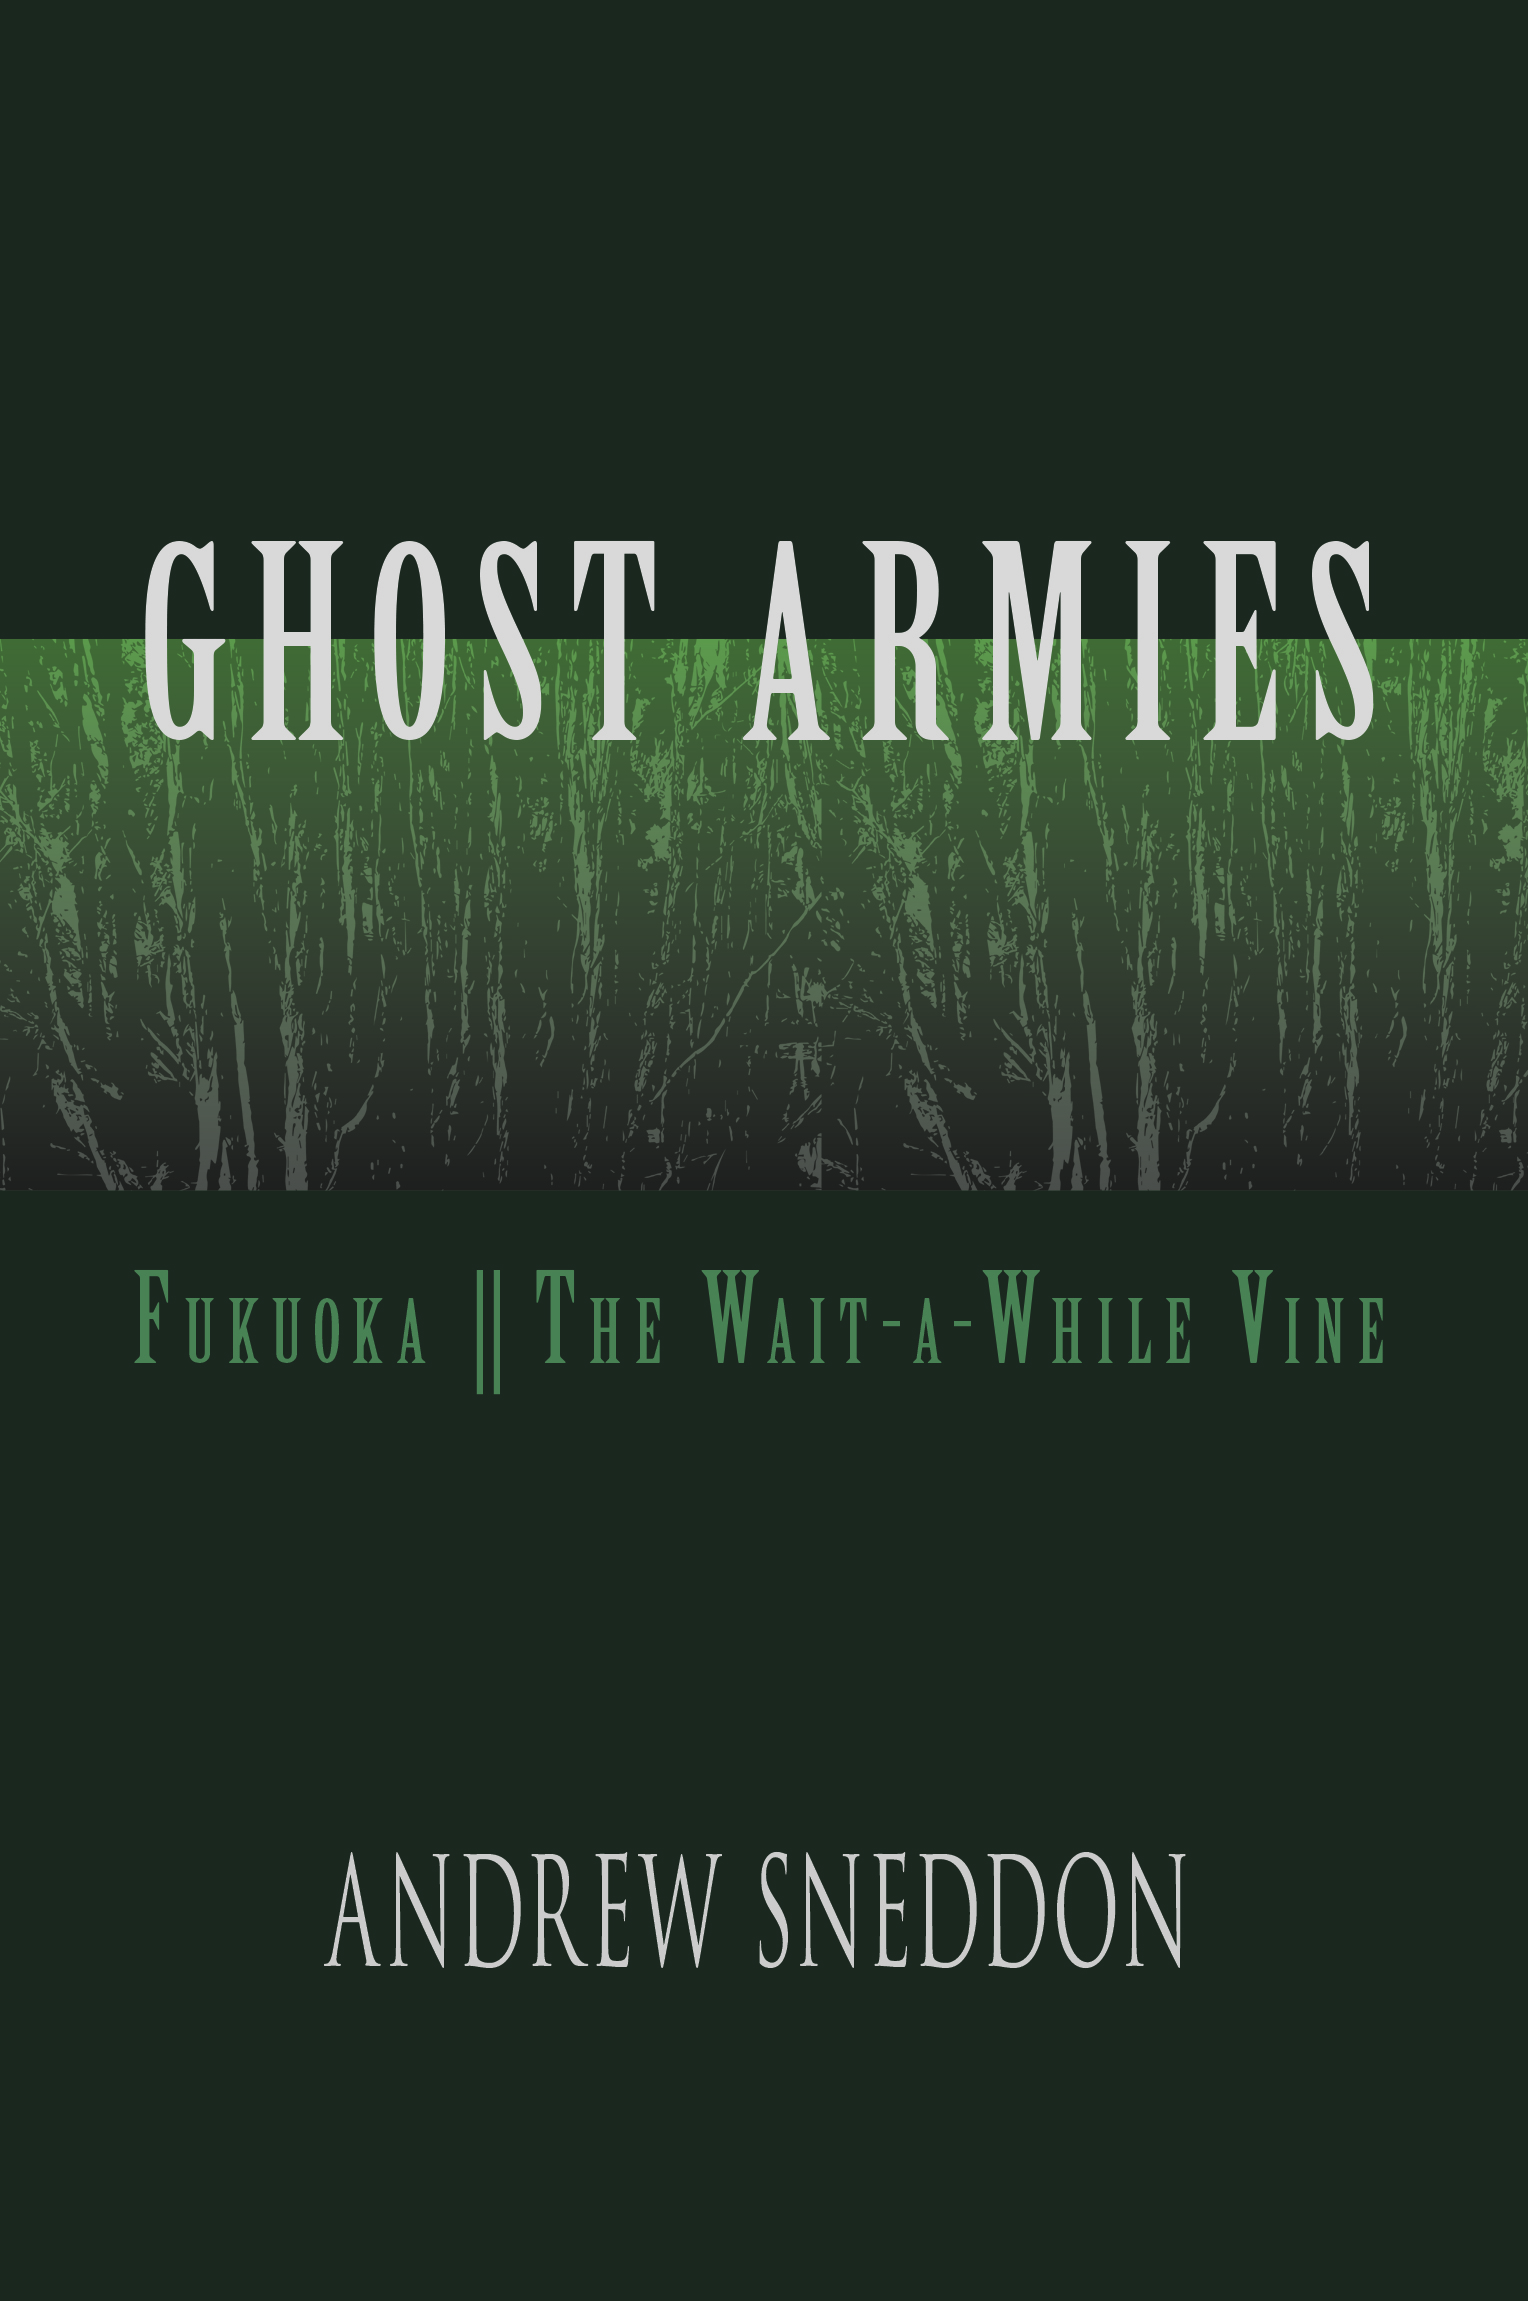 Cover art for Ghost Armies by Andrew Sneddon